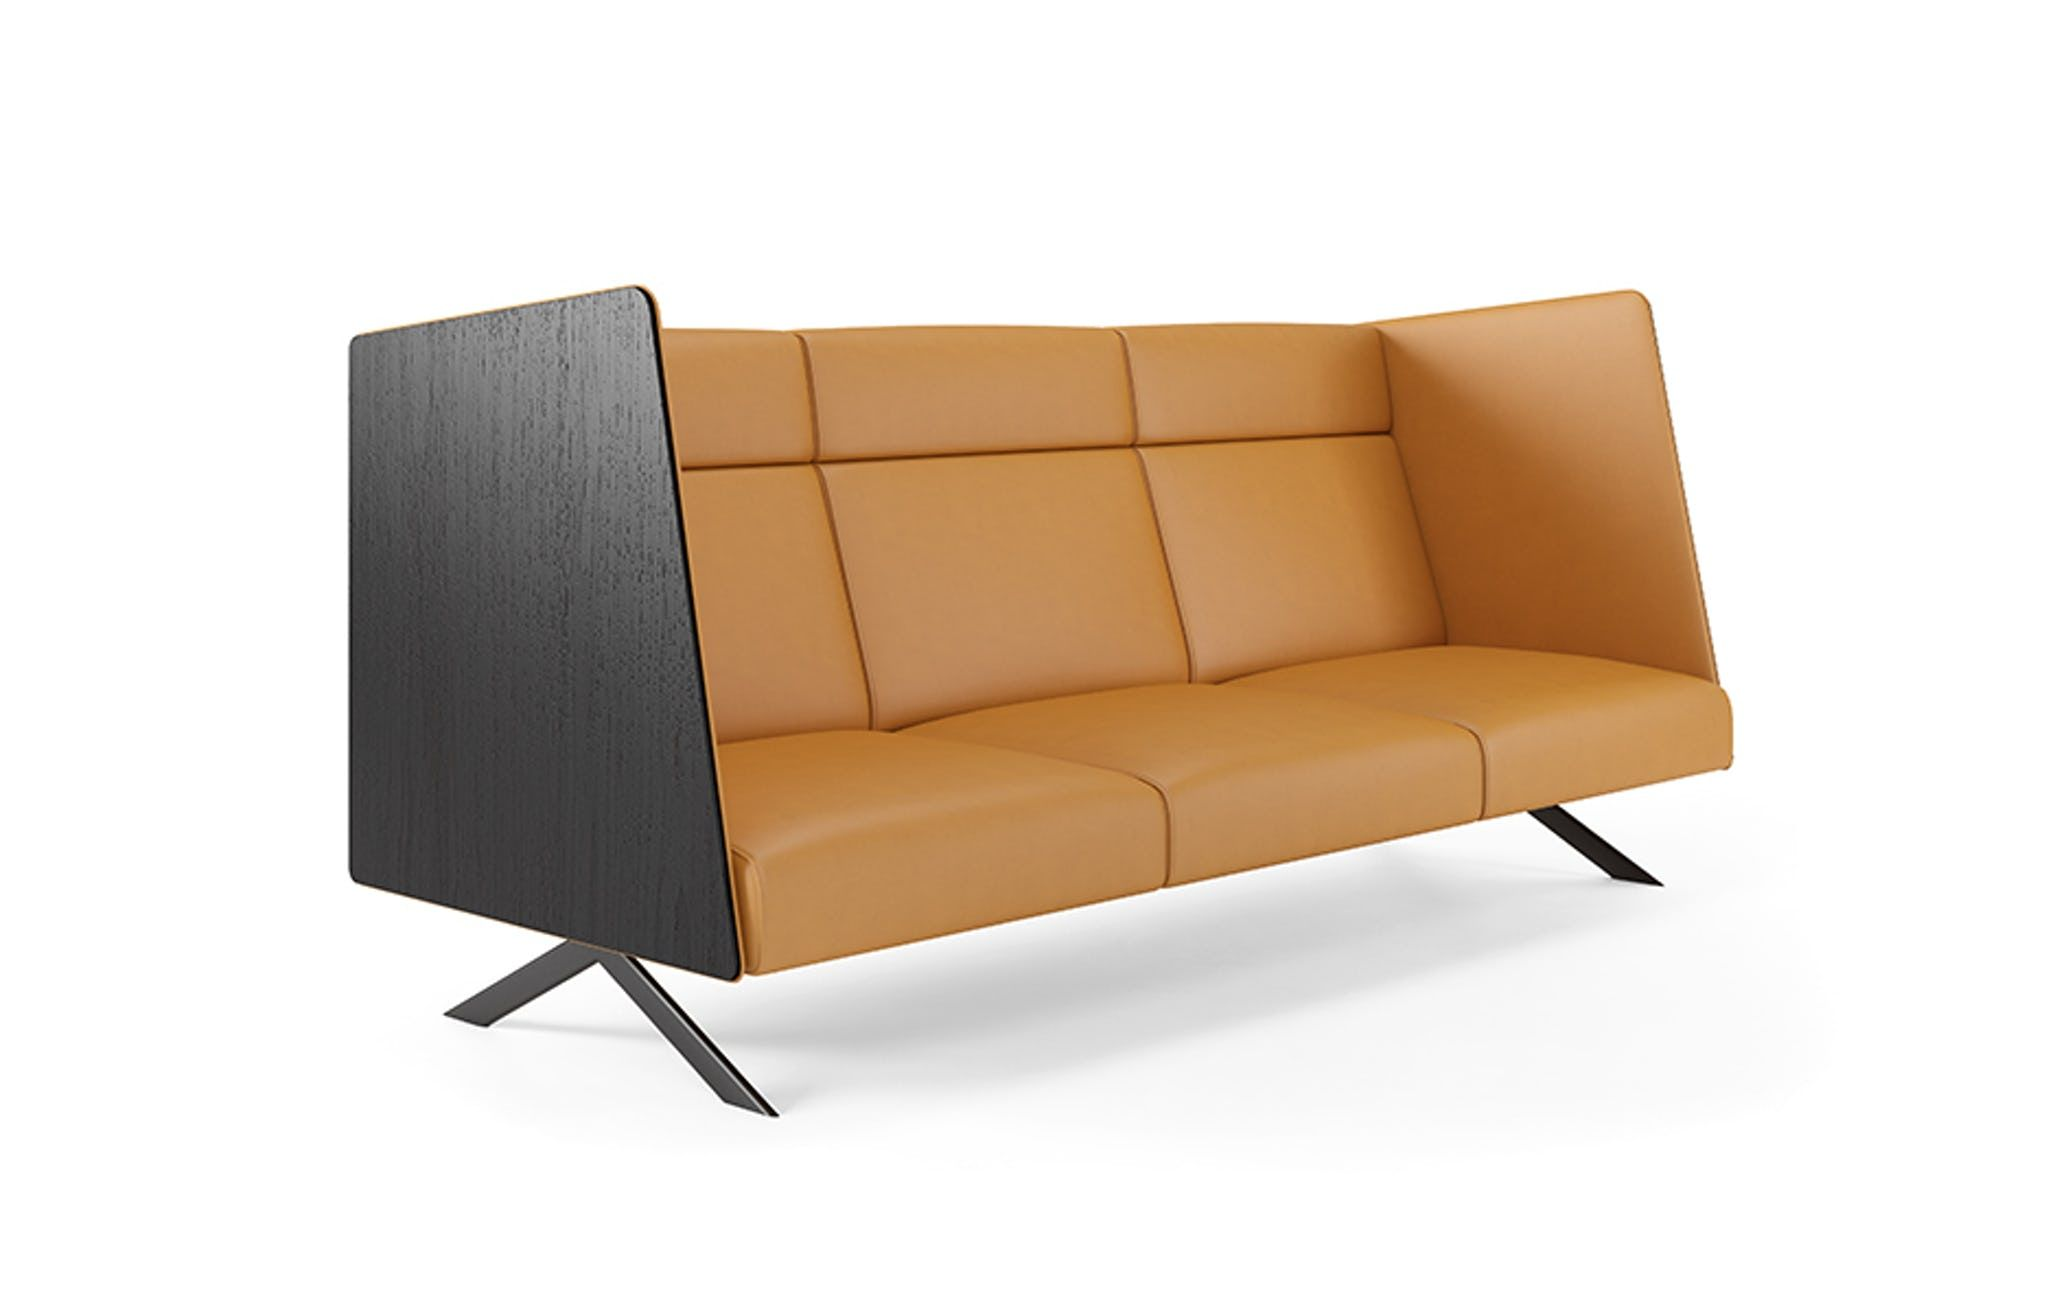 Sistema Legs Sofa By Viccarbe Now Available At Haute Living Sofa Design Sofa Contemporary Furniture Design